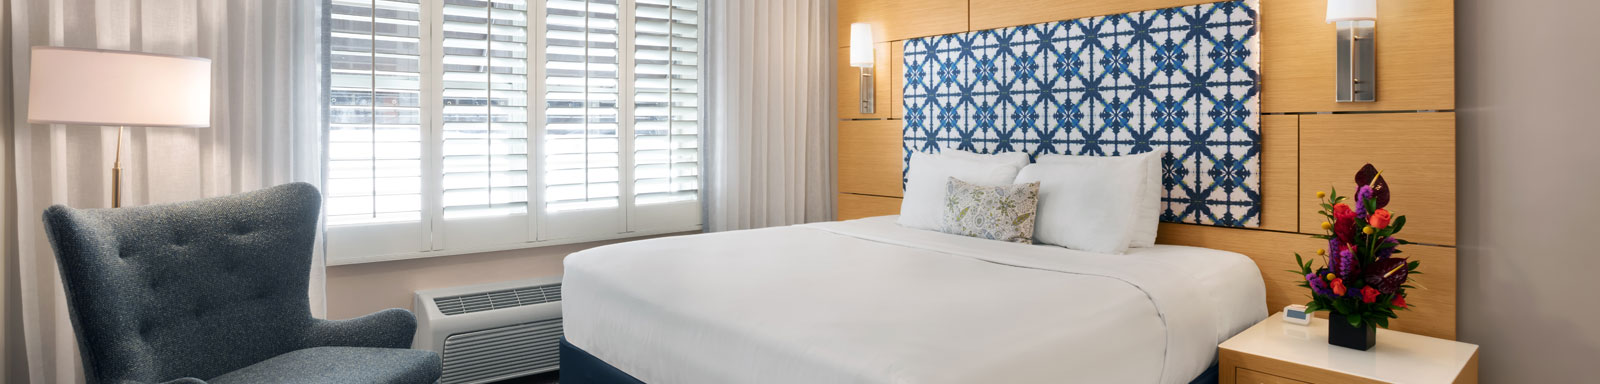 The Landon Miami Hotel, Bay Harbor Islands Book Direct and Save